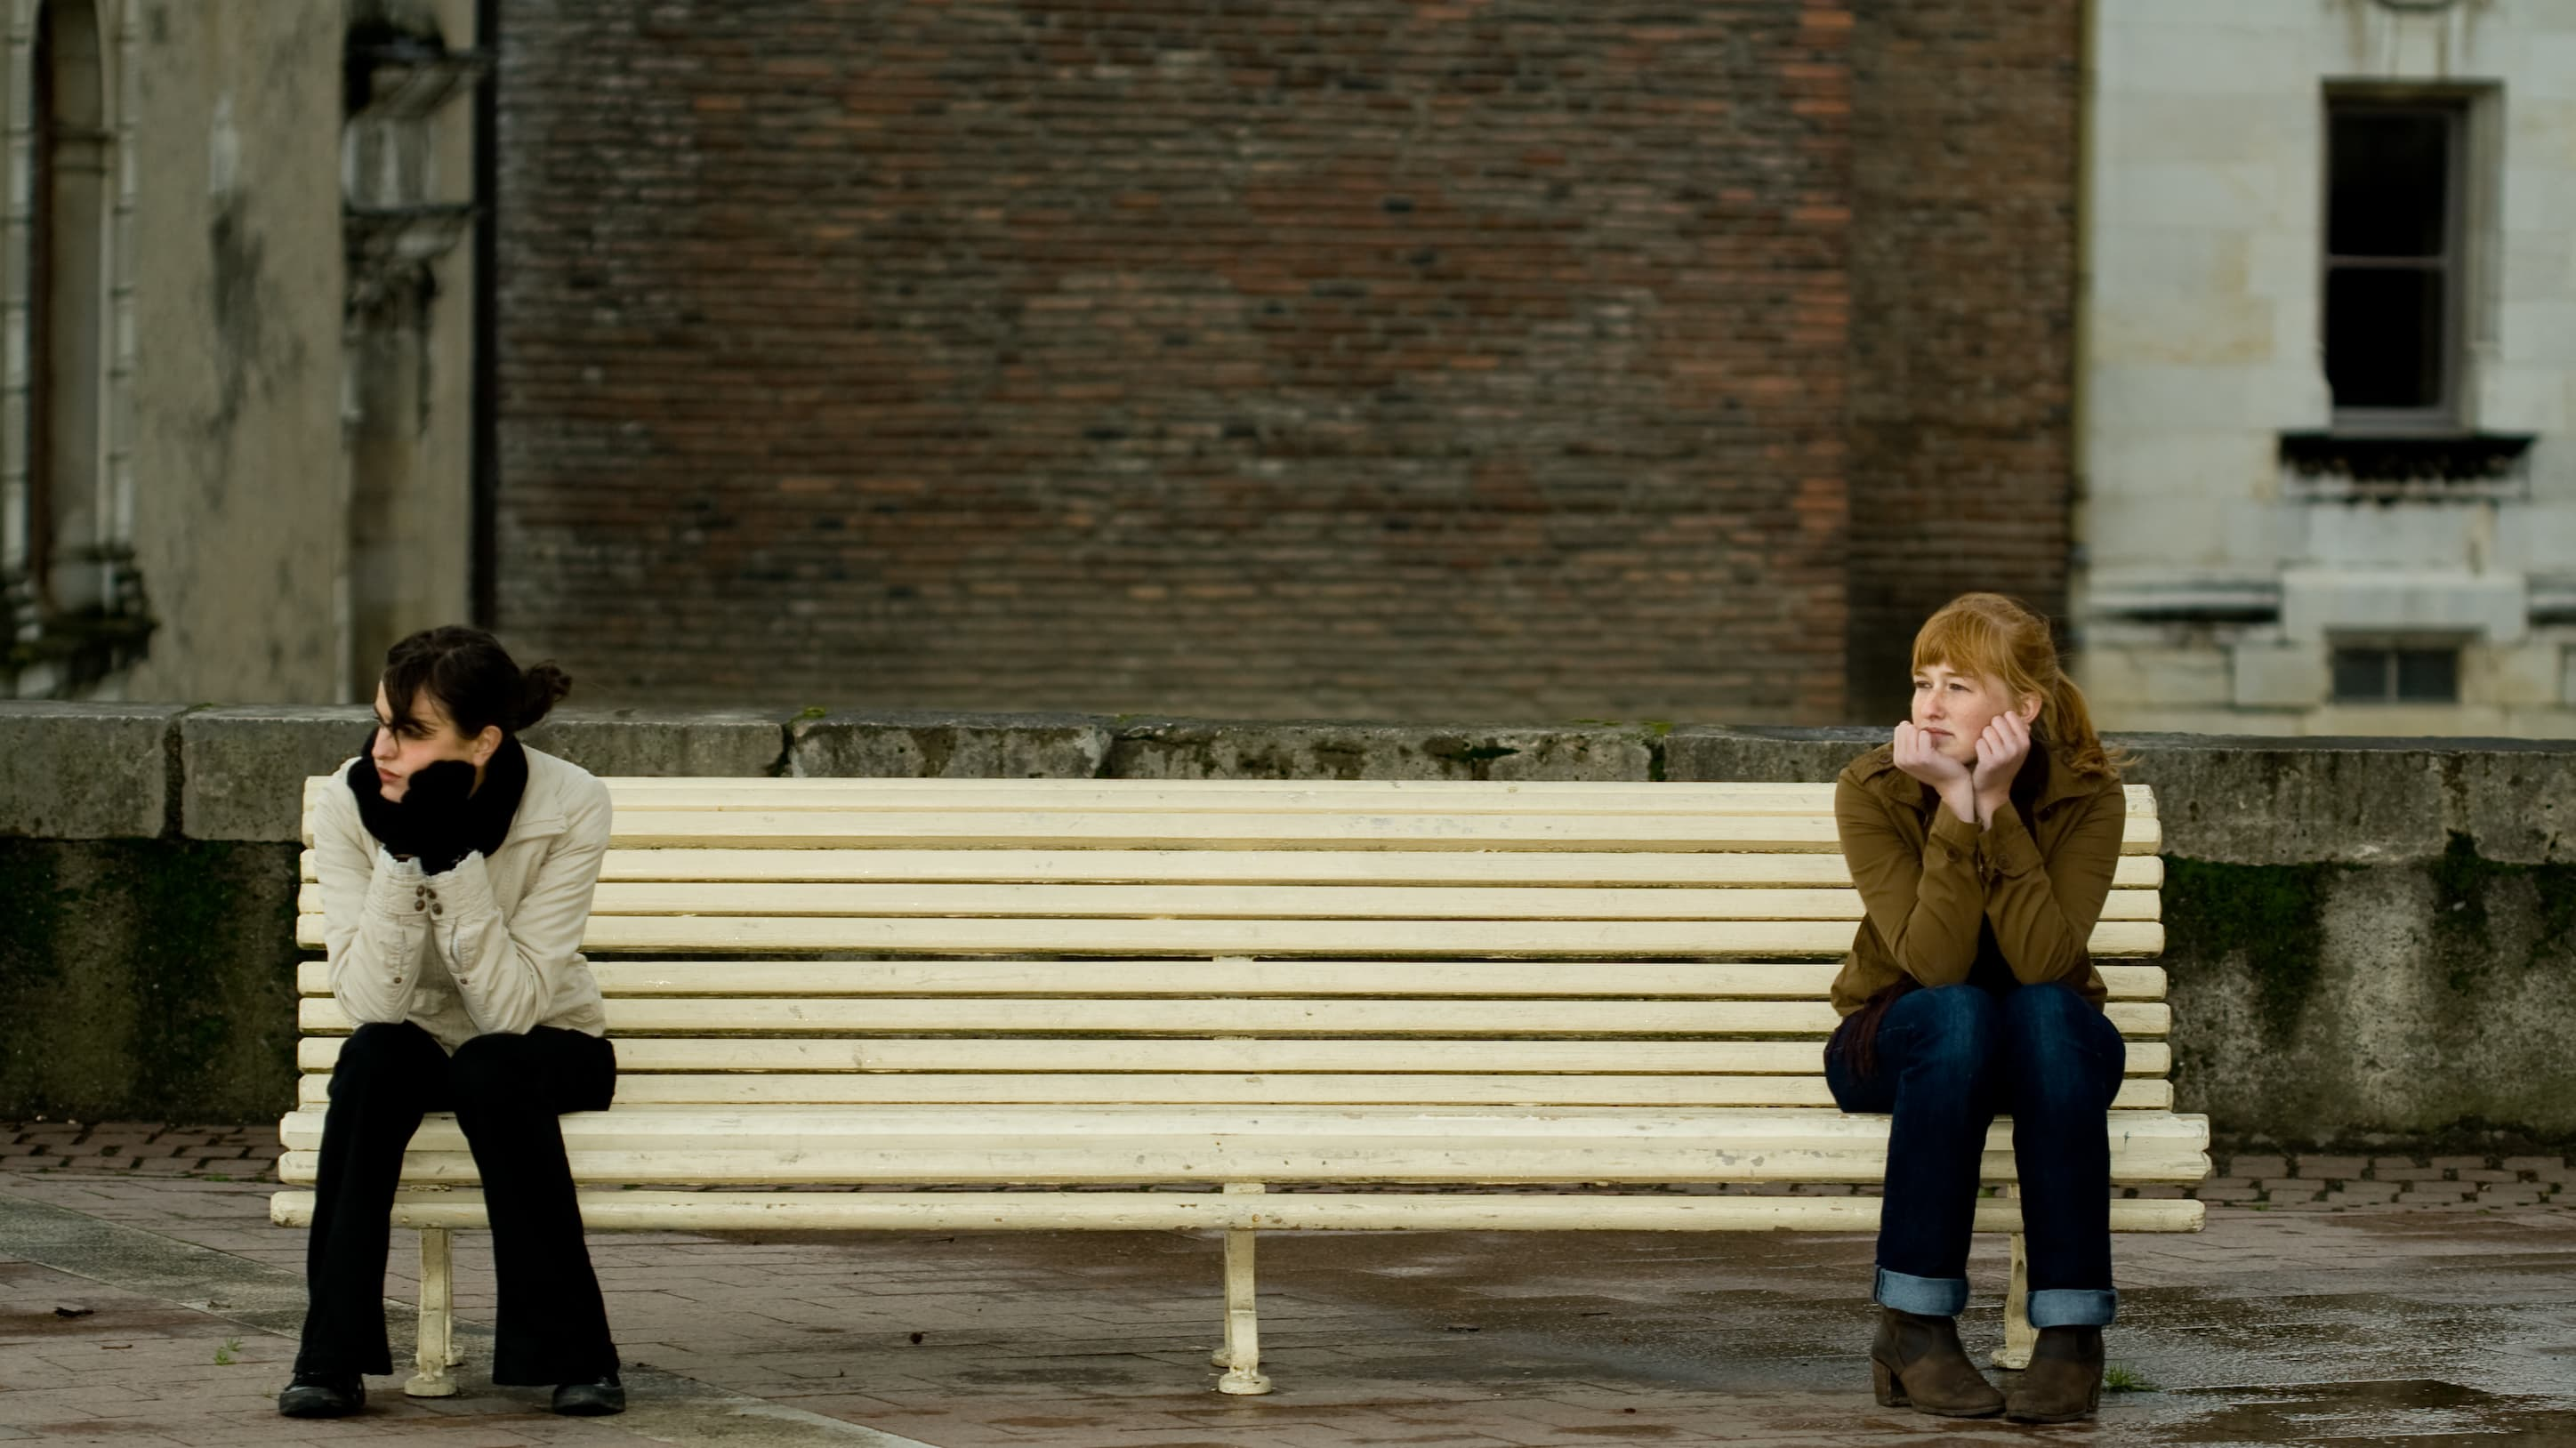 two girls on opposite sides of a bench, practicing social distancing during COVID-19 pandemic